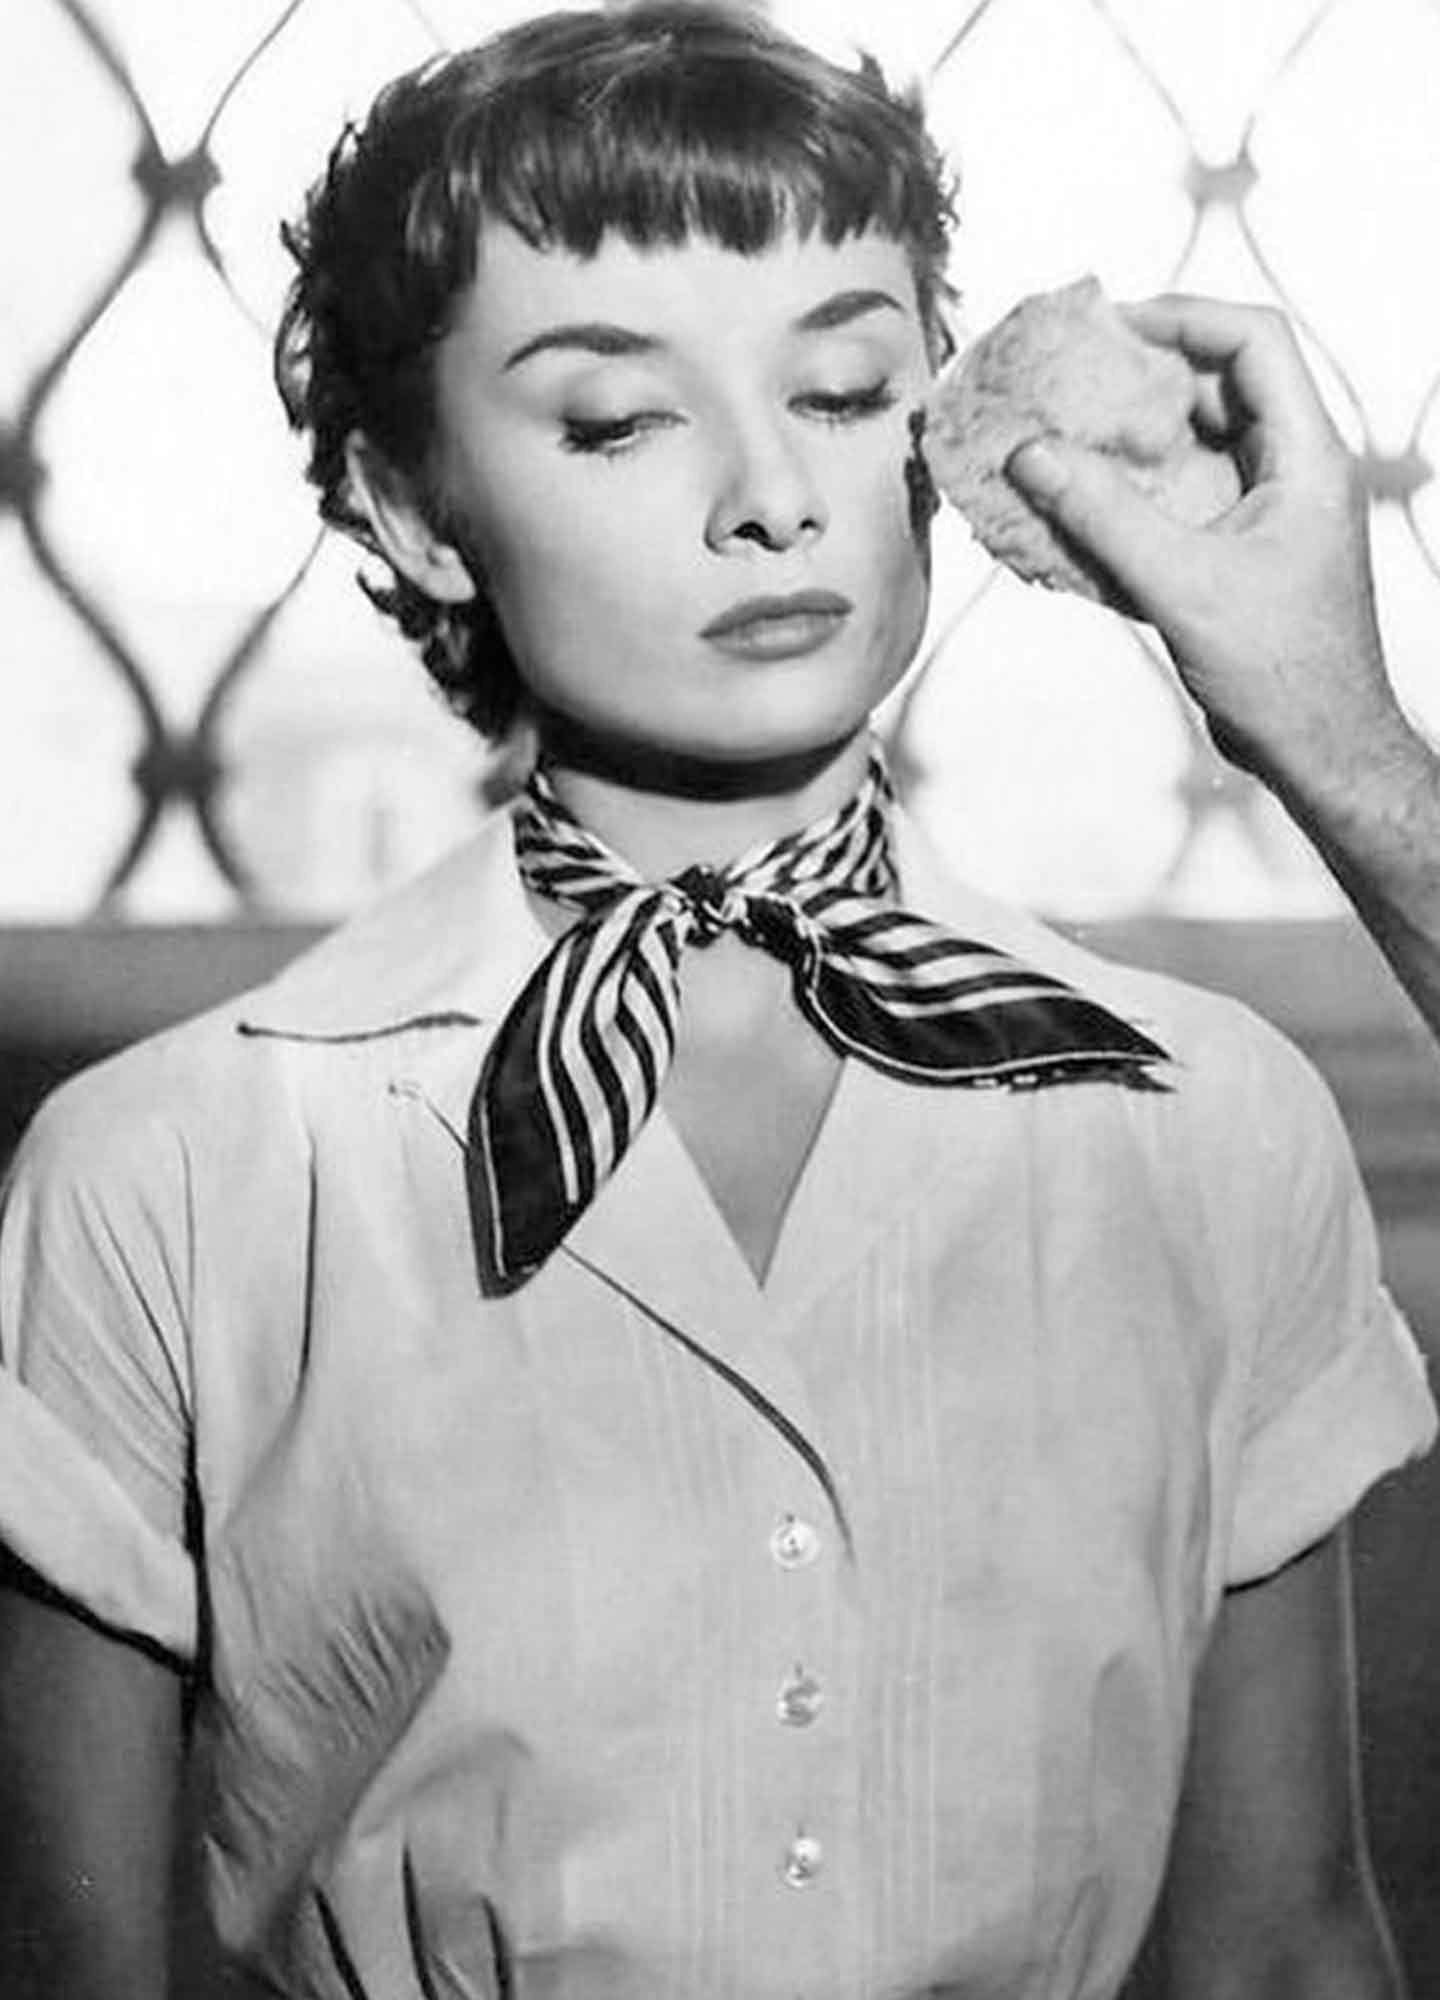 Audrey-Hepburn-wearing-a-white-shirt-and-silk-scarf-tied-around-her-neck-